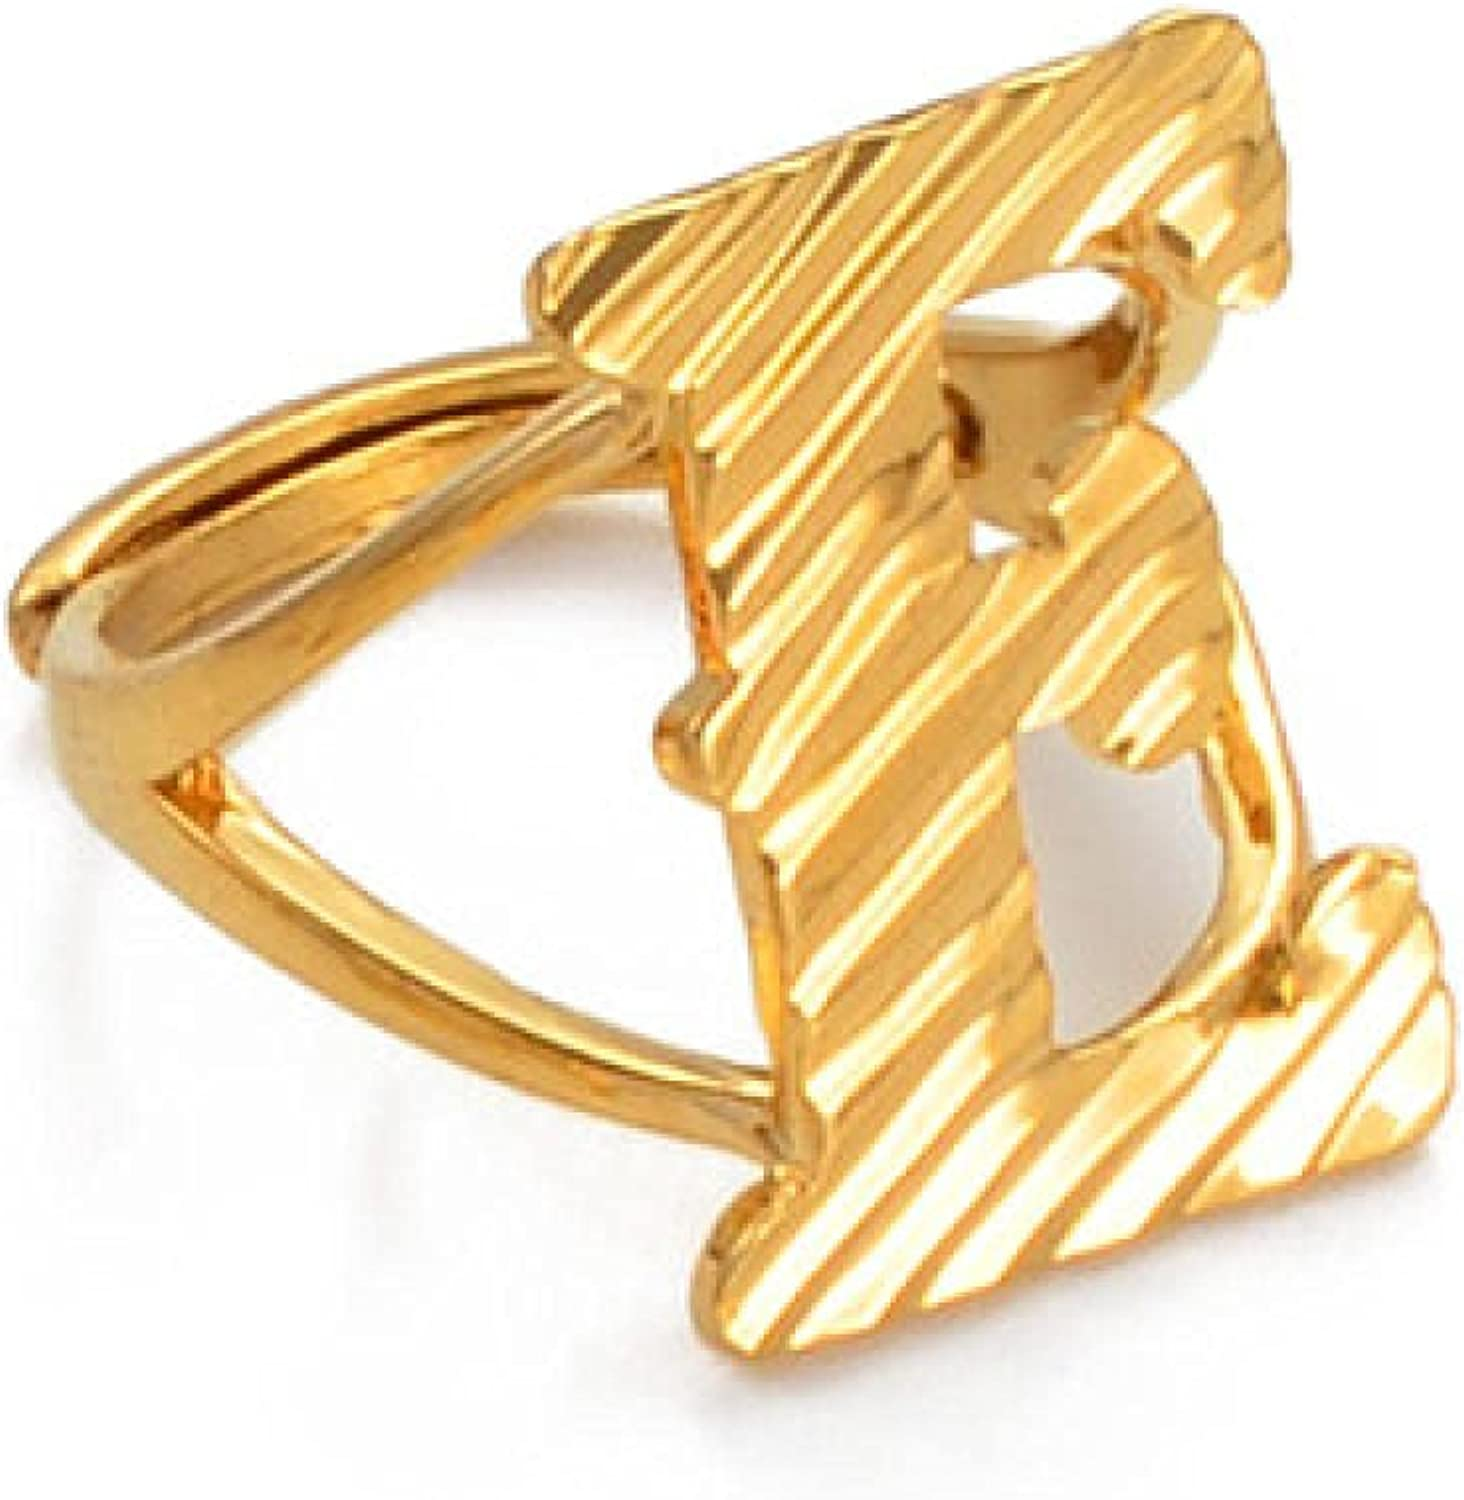 Letters Ring Women Girl Gold Resizable Color Free Shipping Cheap Bargain Gift Free Shipping Cheap Bargain Gift Rings Initial Engli